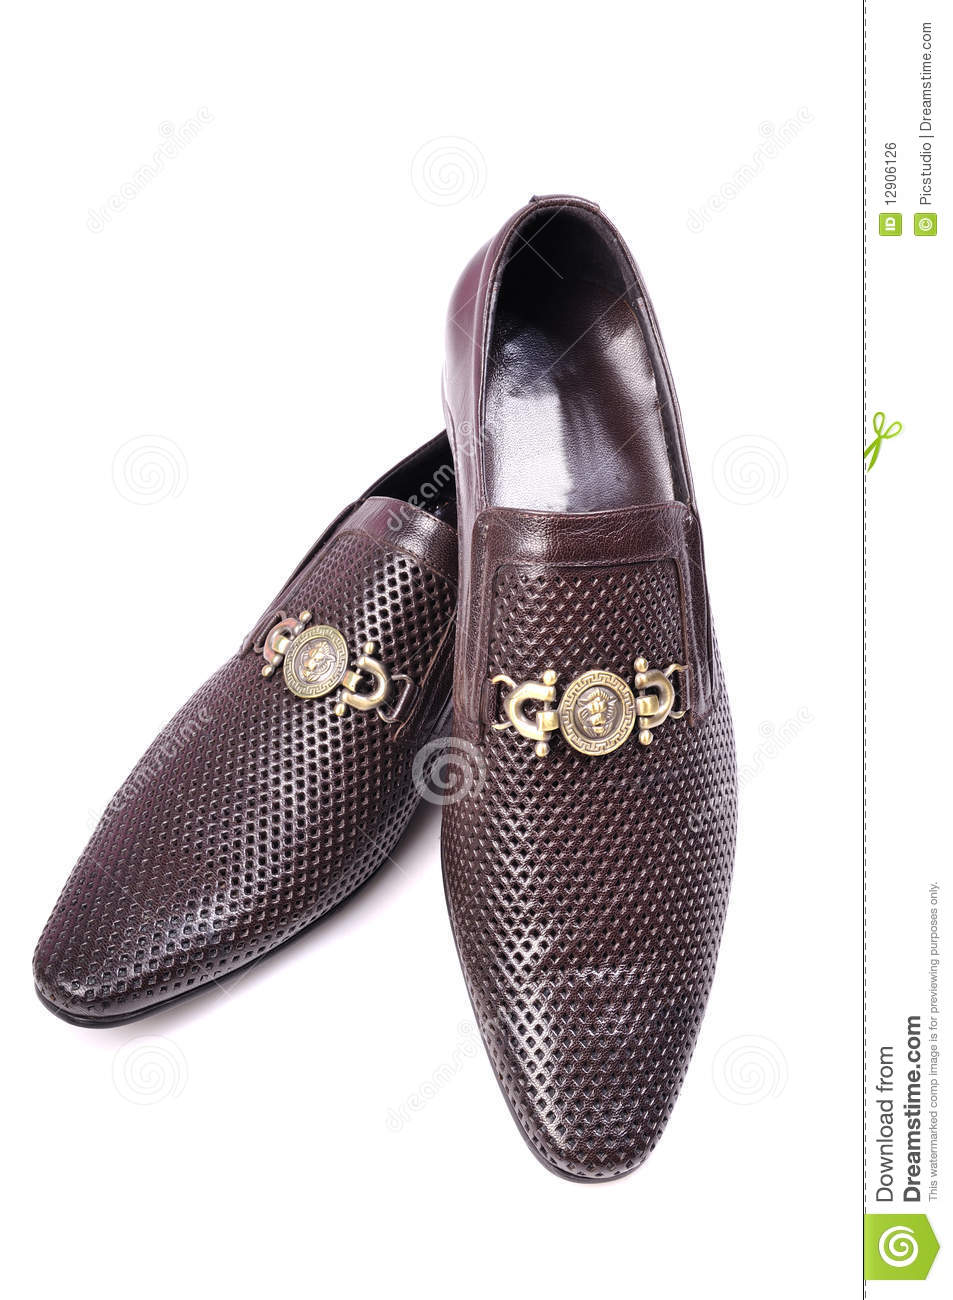 branded formal shoes stock photo image of menswear